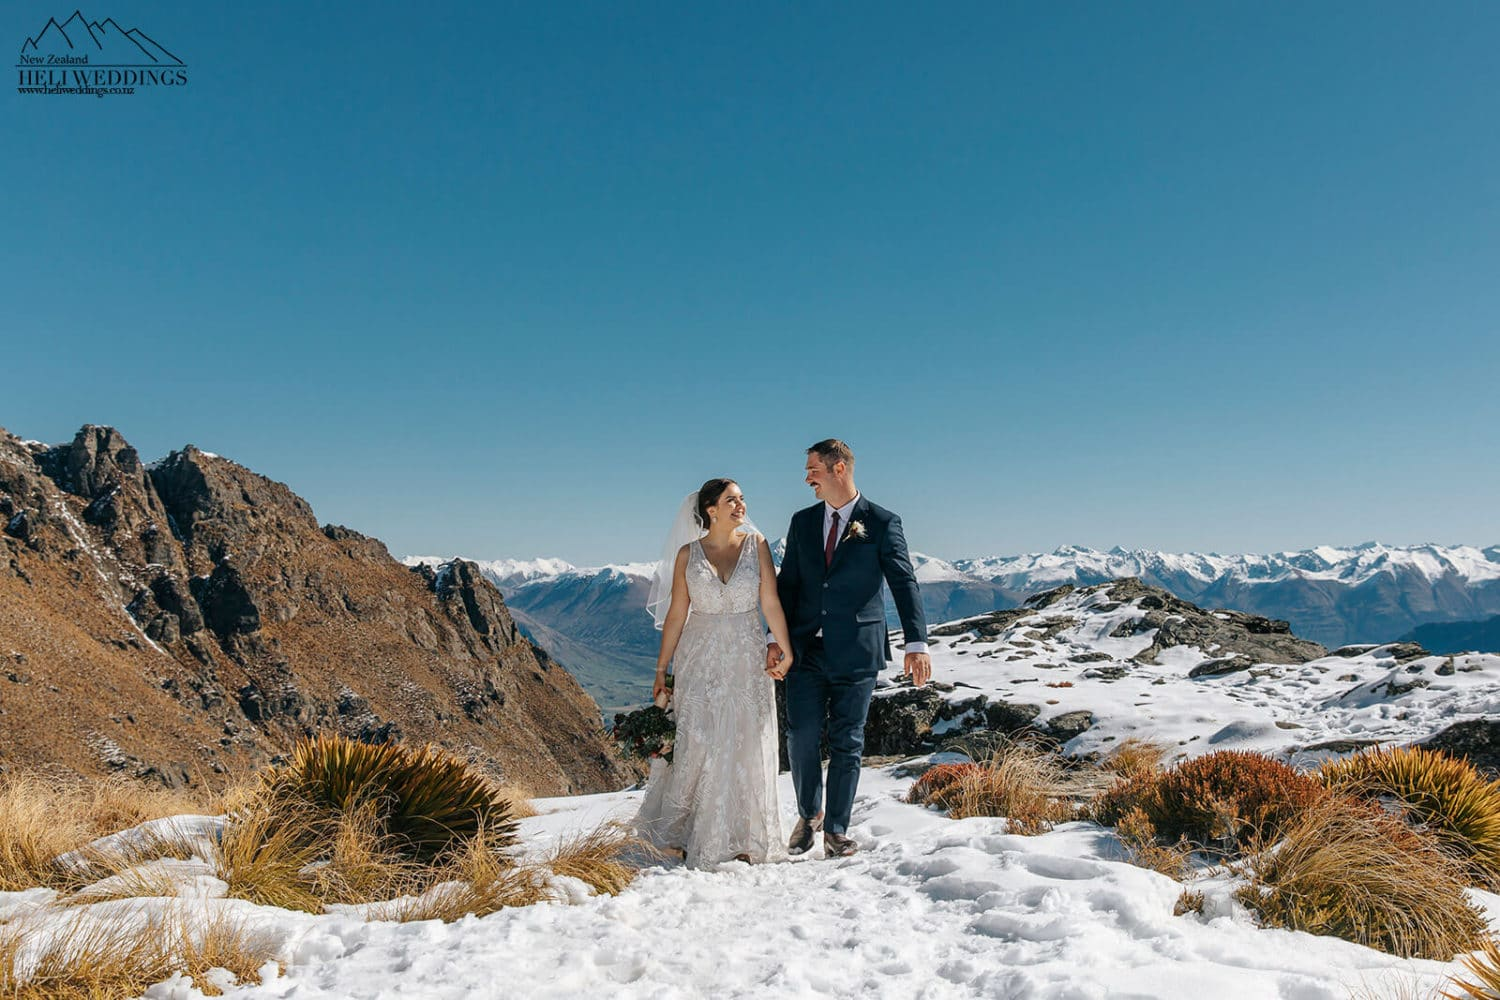 Destination Wedding Package Wedding on The Ledge in Queenstown